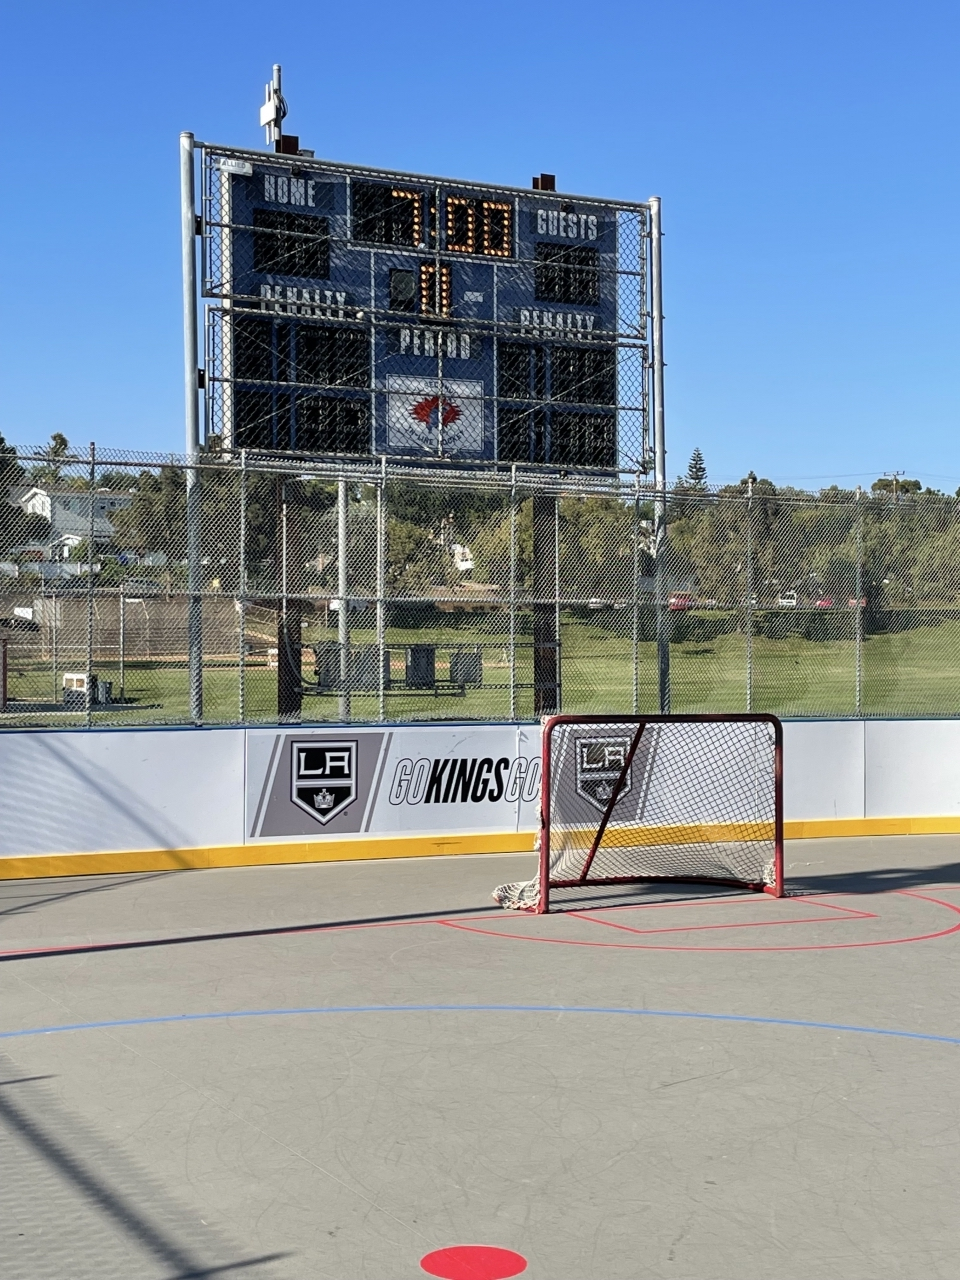 AEG's LA Kings and the City of El Segundo unveil the city's newly completed roller hockey rink made in partnership with the Kings and a $75,000 on August 26, 2021.